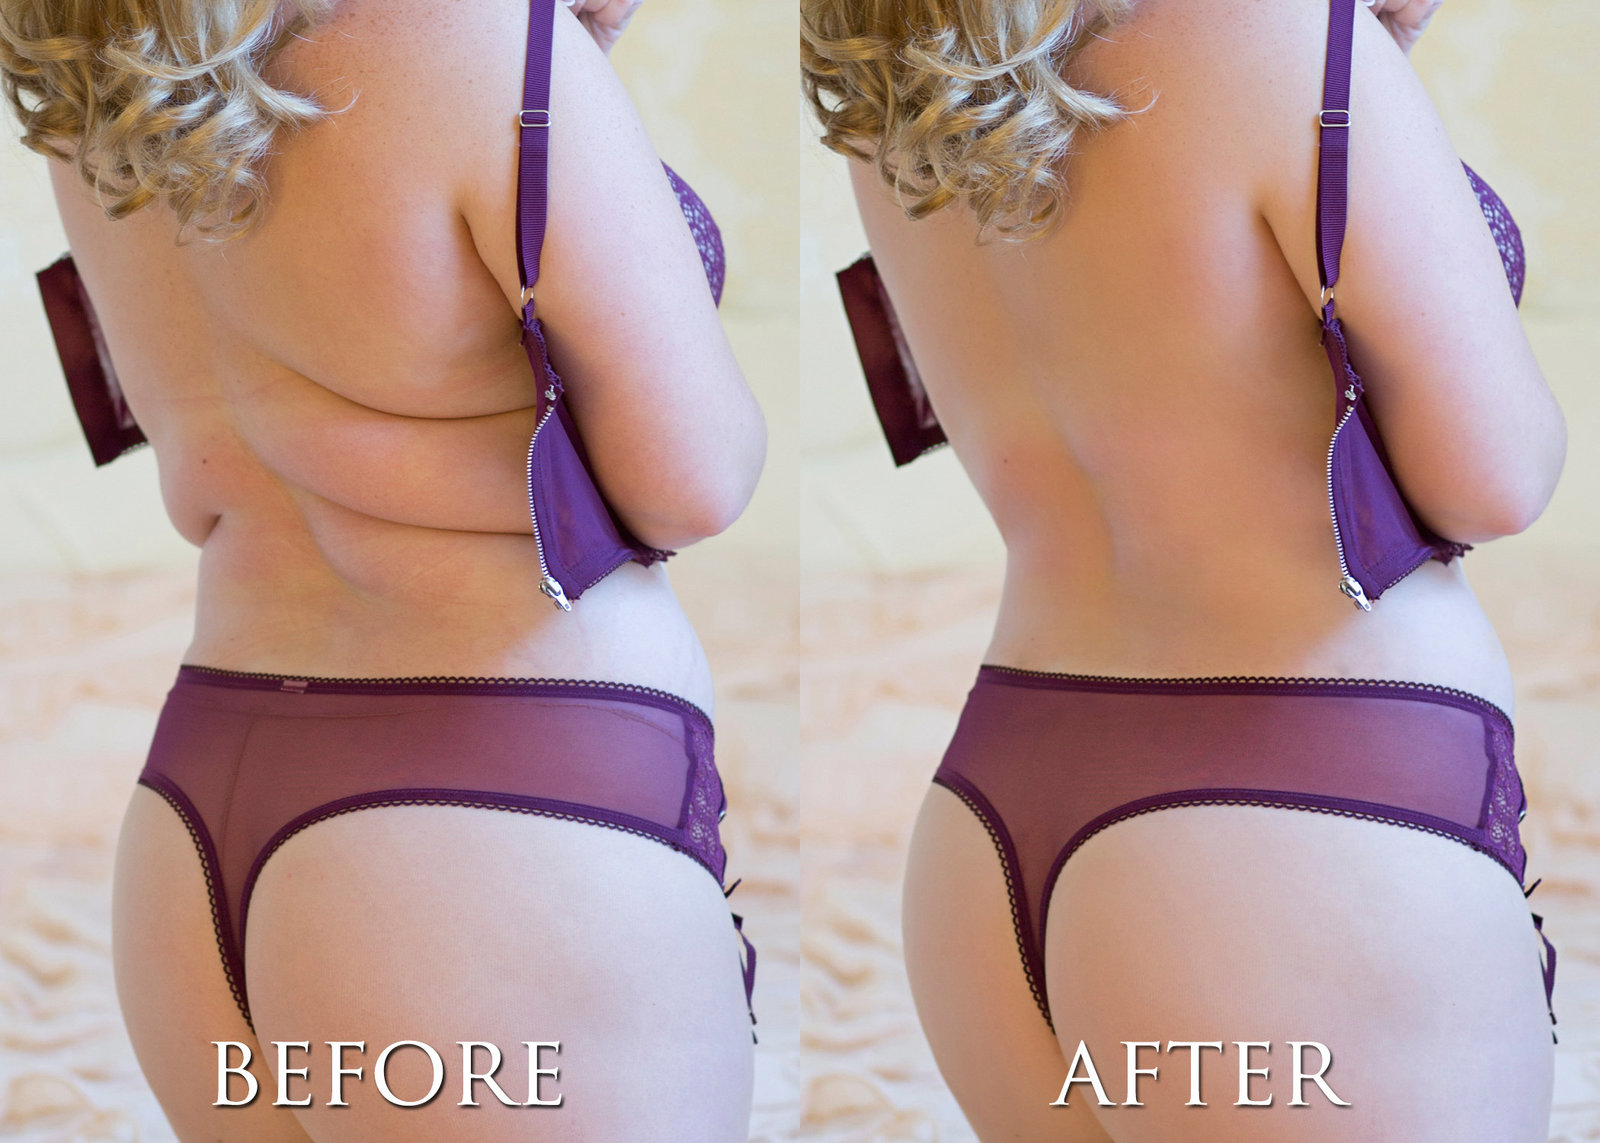 Before and After Retouch_3 copy